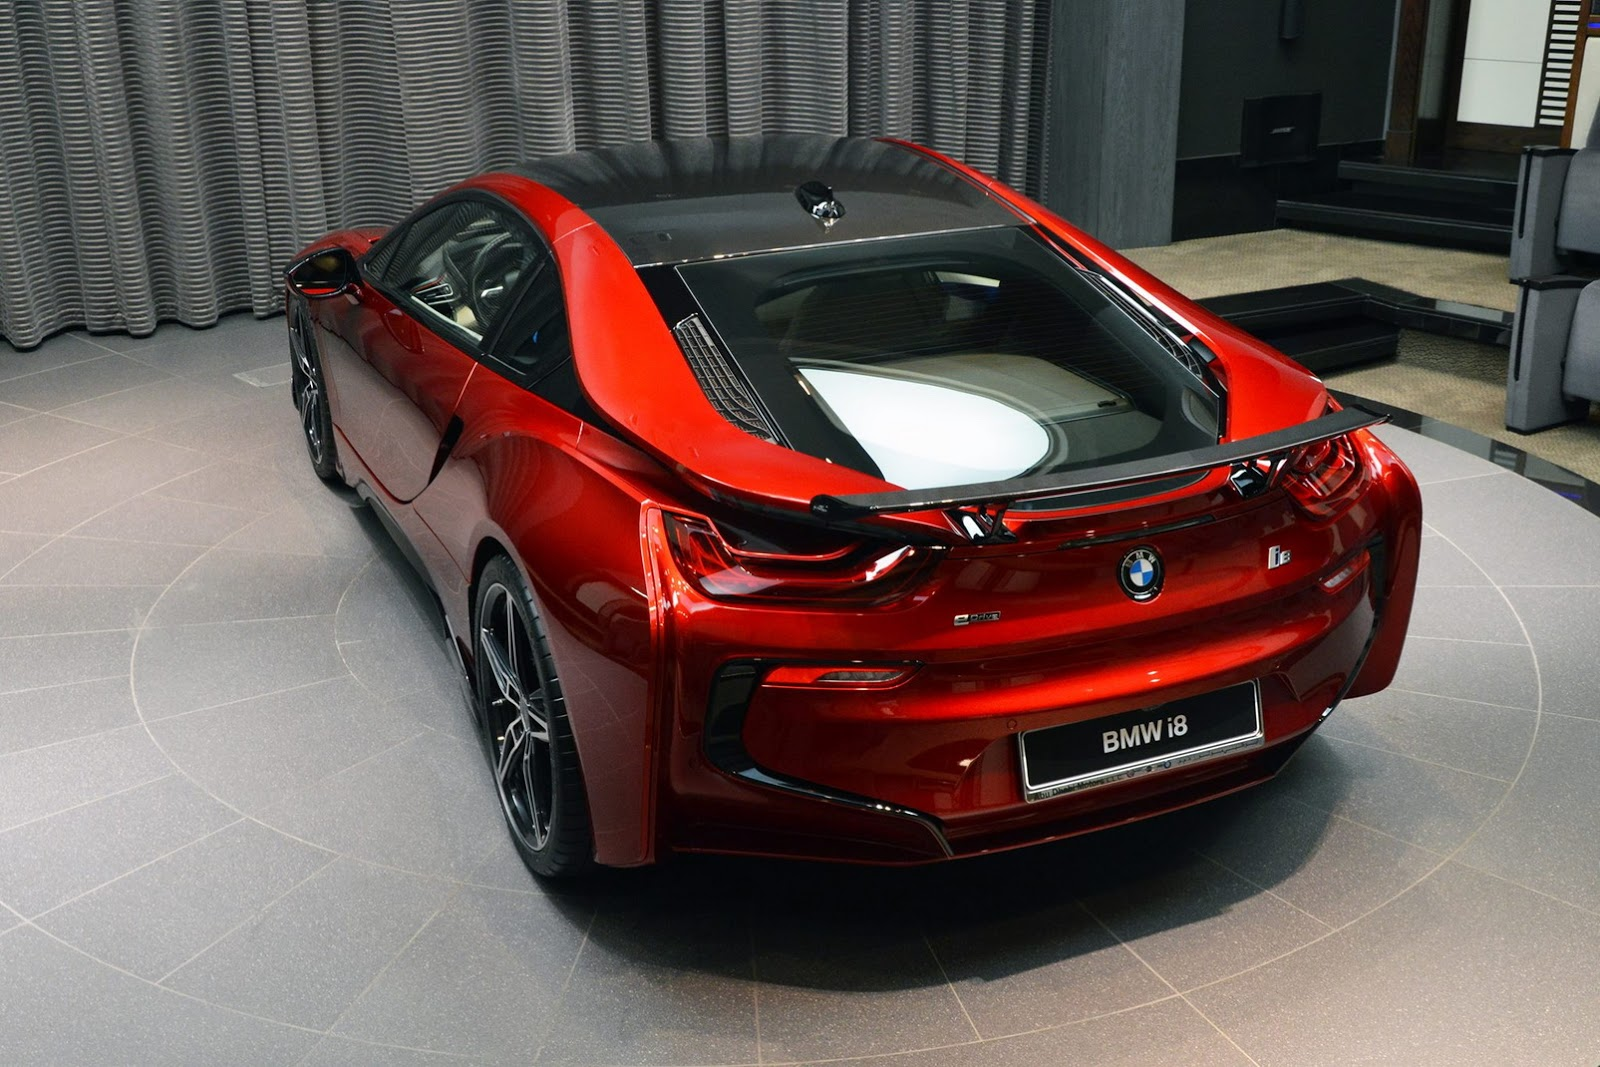 Lava Red Bmw I8 Built For A Princess In Abu Dhabi Supercar Report